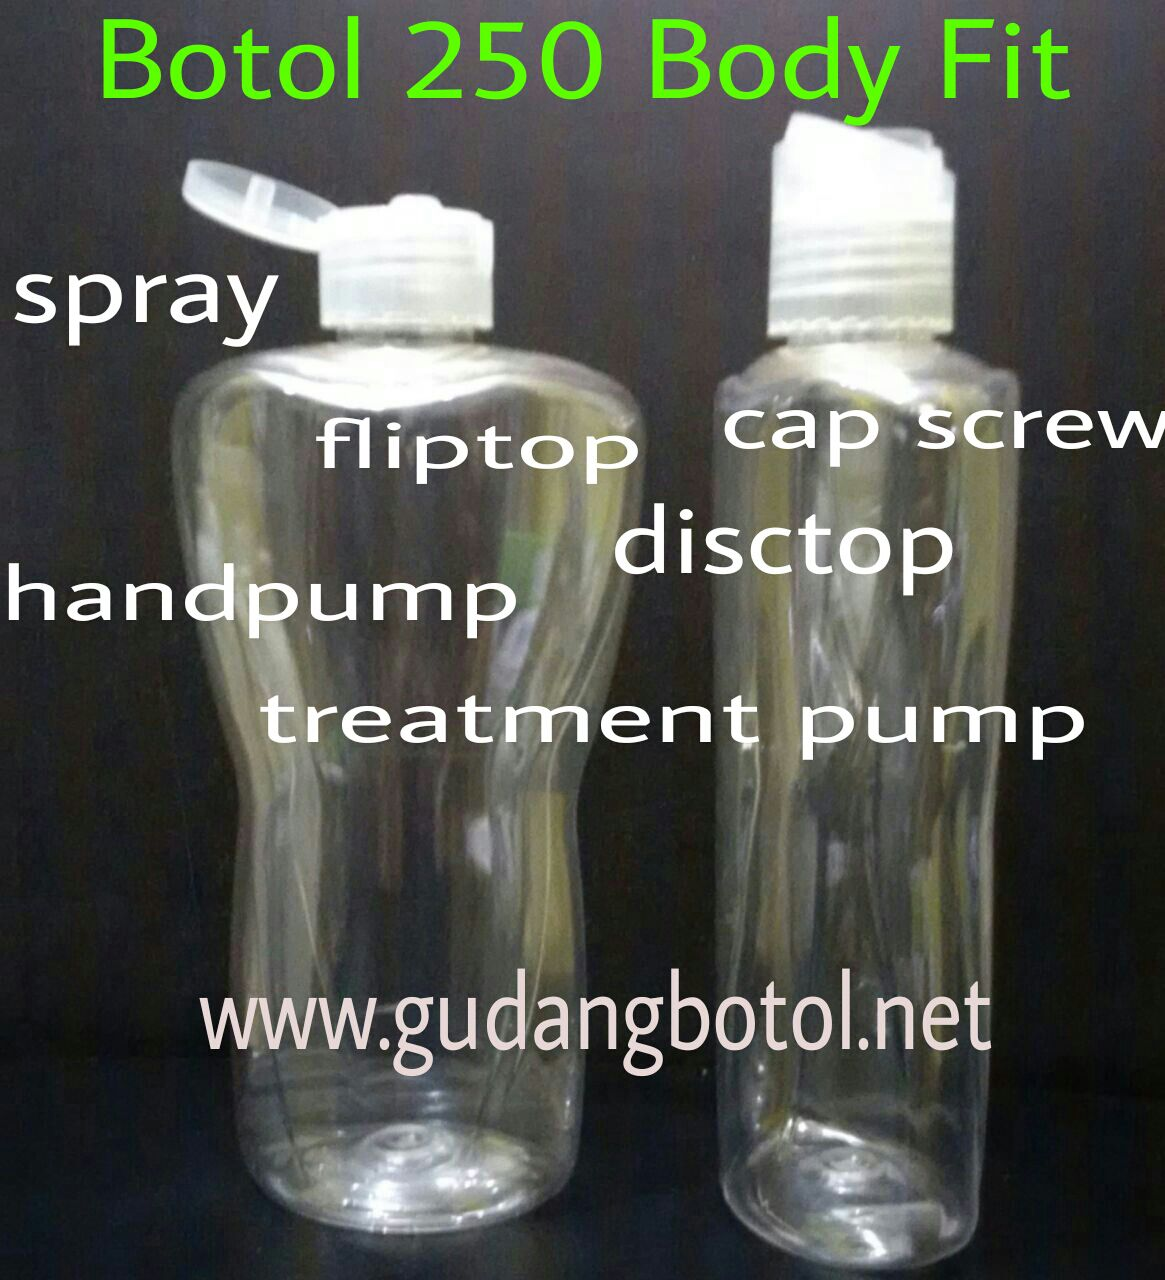 botol 250ml body fit